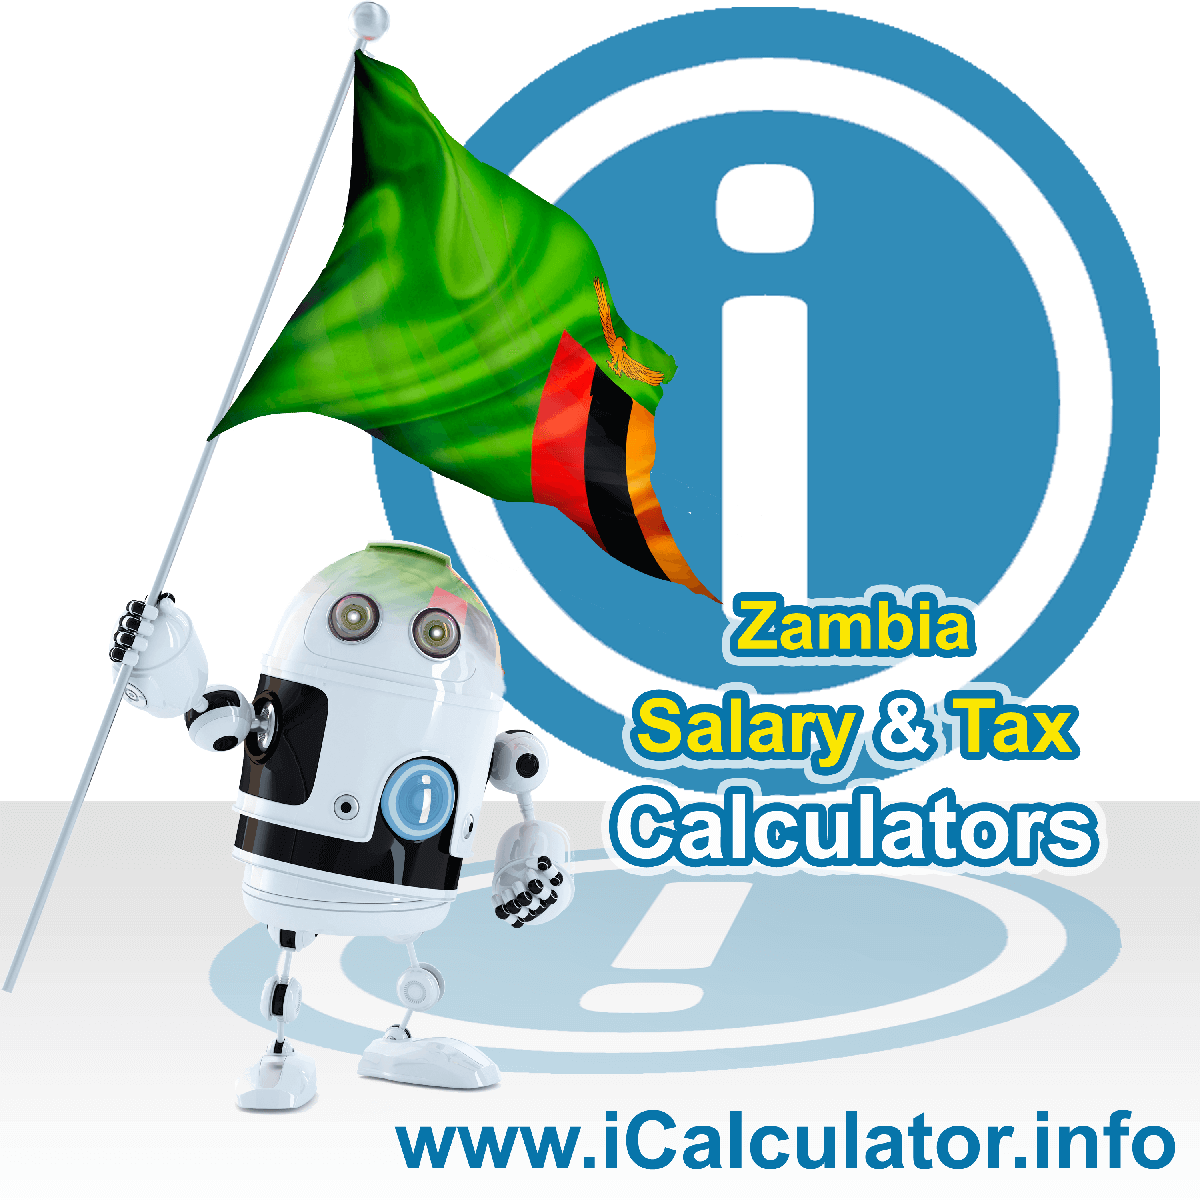 Zambia Tax Calculator. This image shows the Zambia flag and information relating to the tax formula for the Zambia Salary Calculator